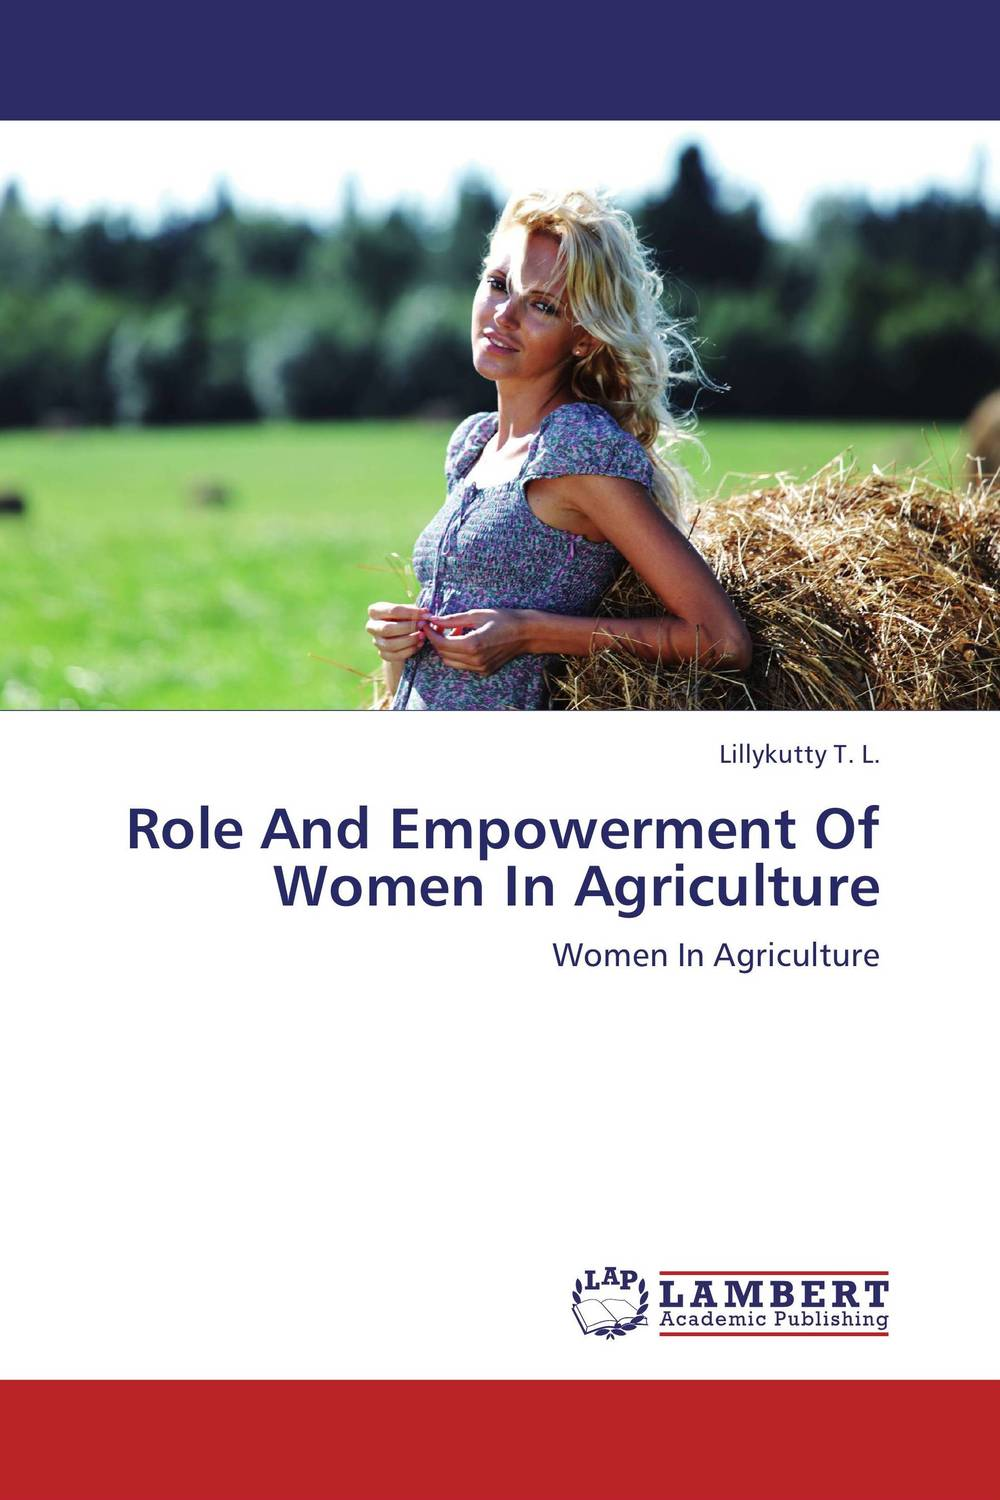 Role And Empowerment Of Women In Agriculture pastoralism and agriculture pennar basin india